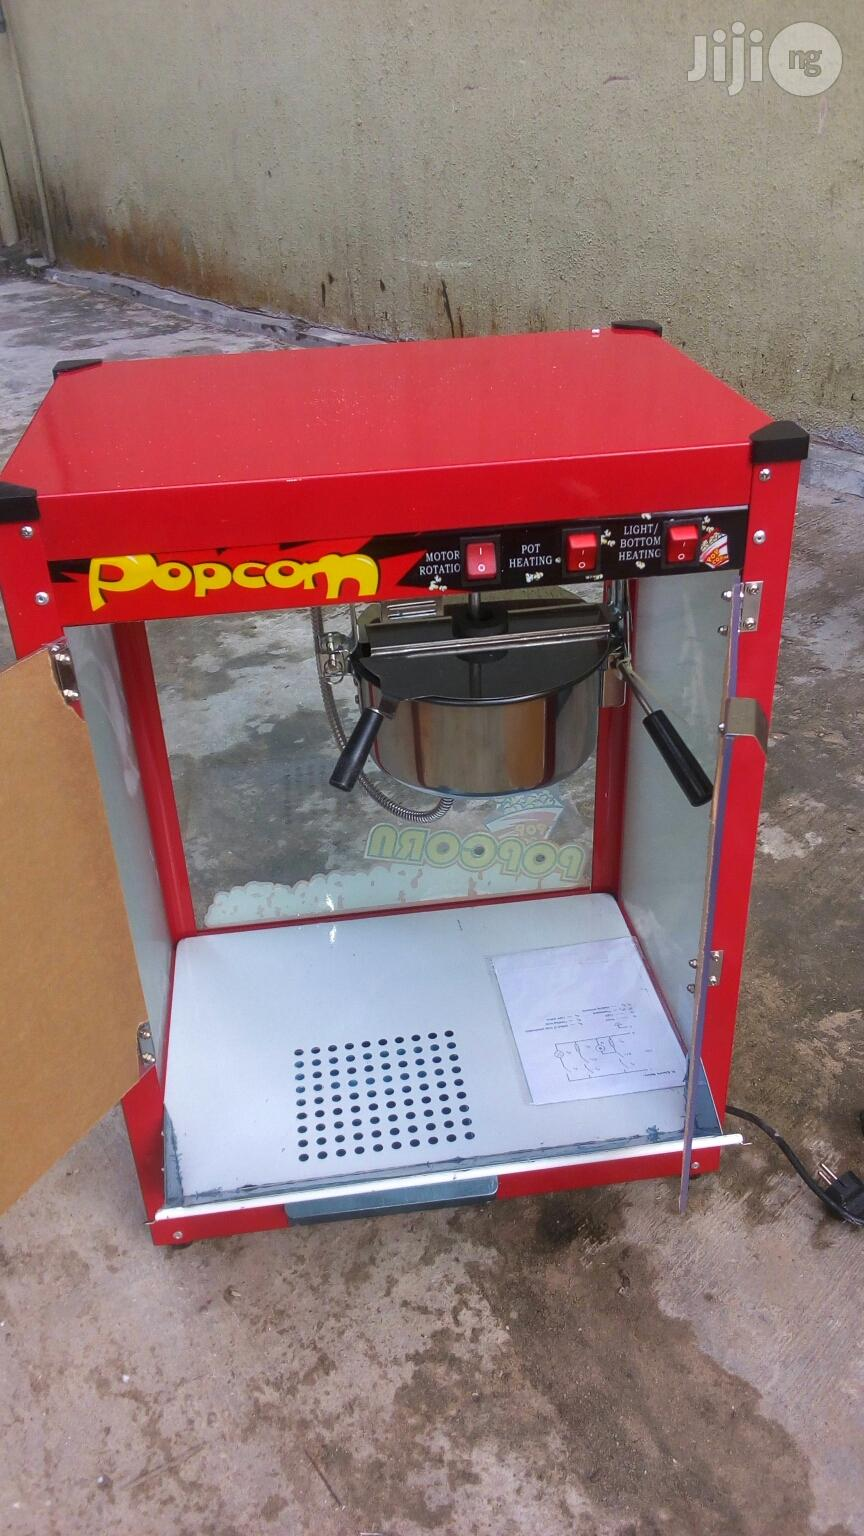 Popcorn Machine Without Cap in Ojo - Restaurant & Catering ...